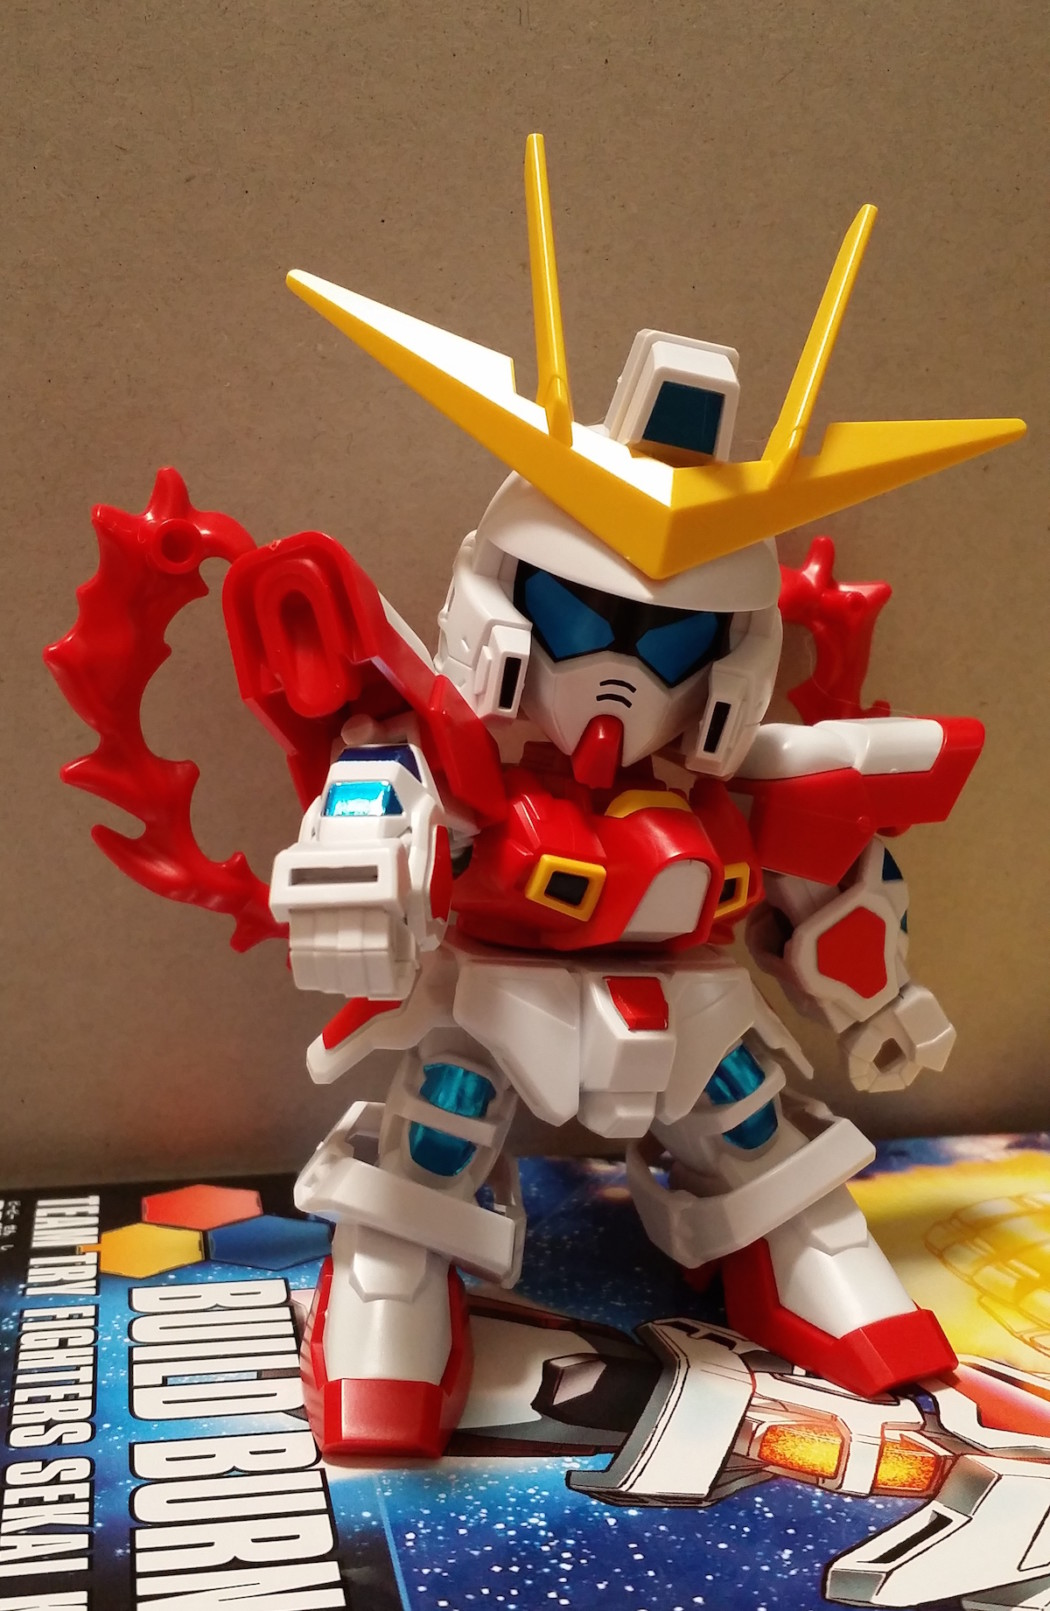 BB Senshi: Build Burning Gundam by Bandai – Build